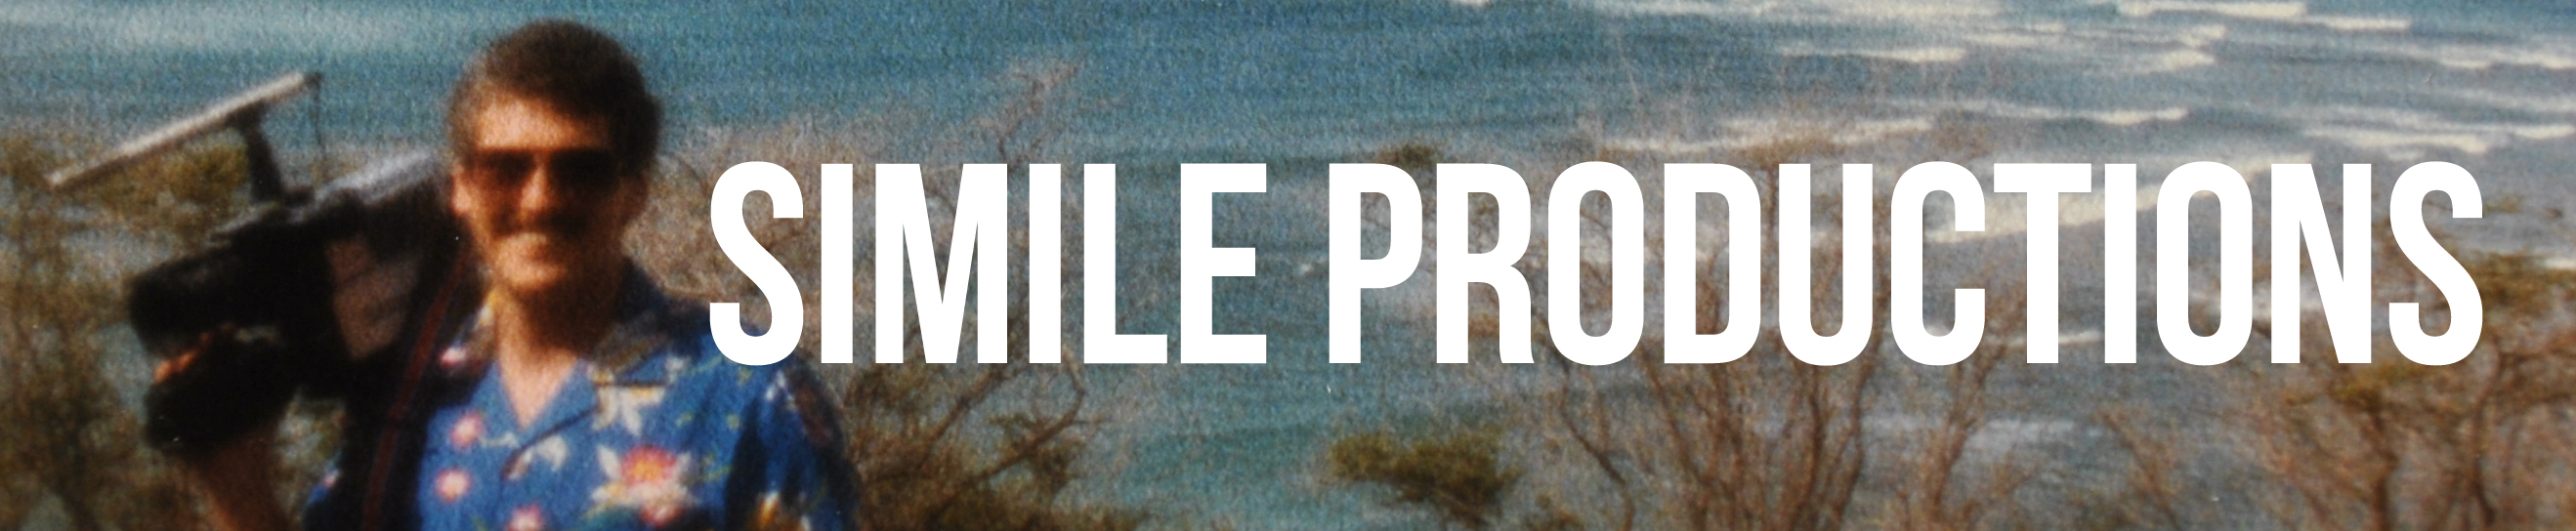 Simile Productions -